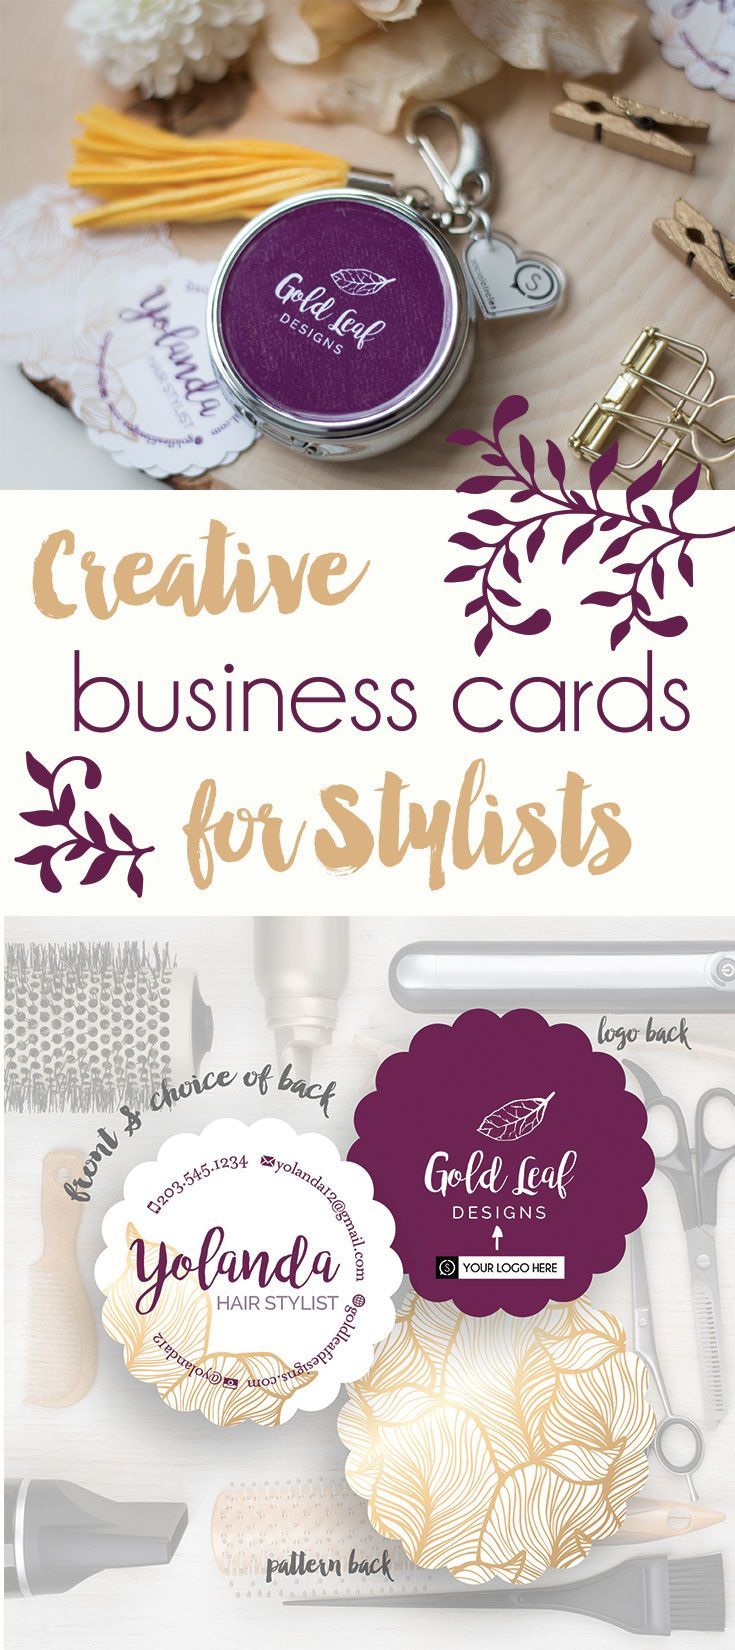 12 best business card ideas images on pinterest architecture creative business card designs salon businesshairstylist magicingreecefo Image collections